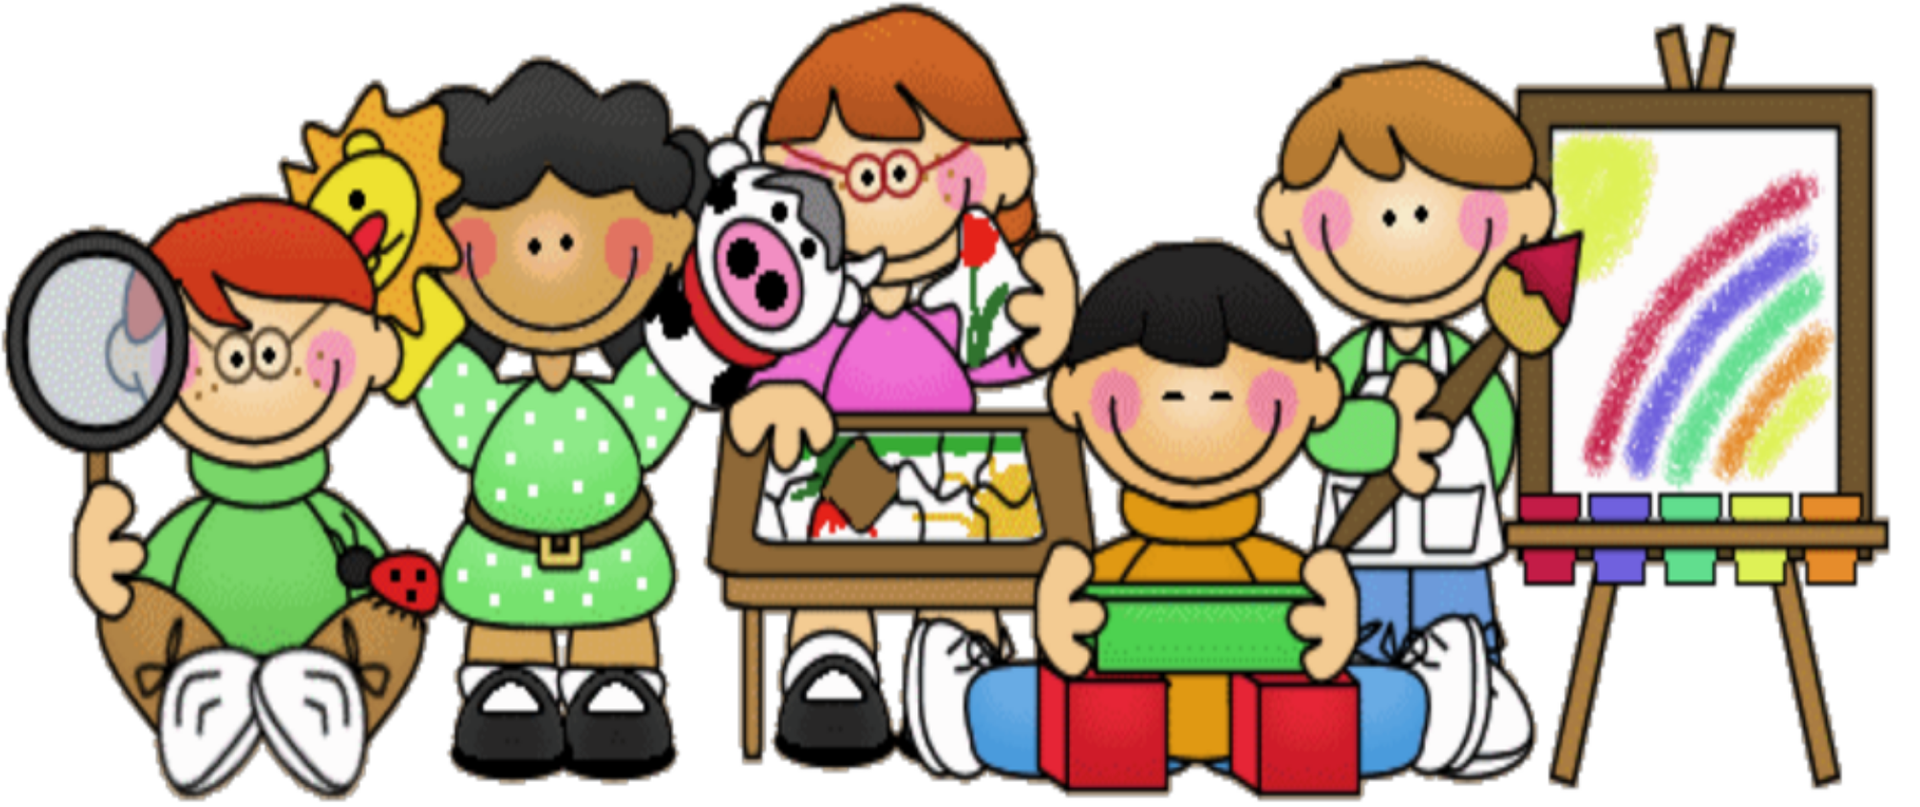 school naptime clipart 20 free Cliparts | Download images ...Naptime Helper Clipart